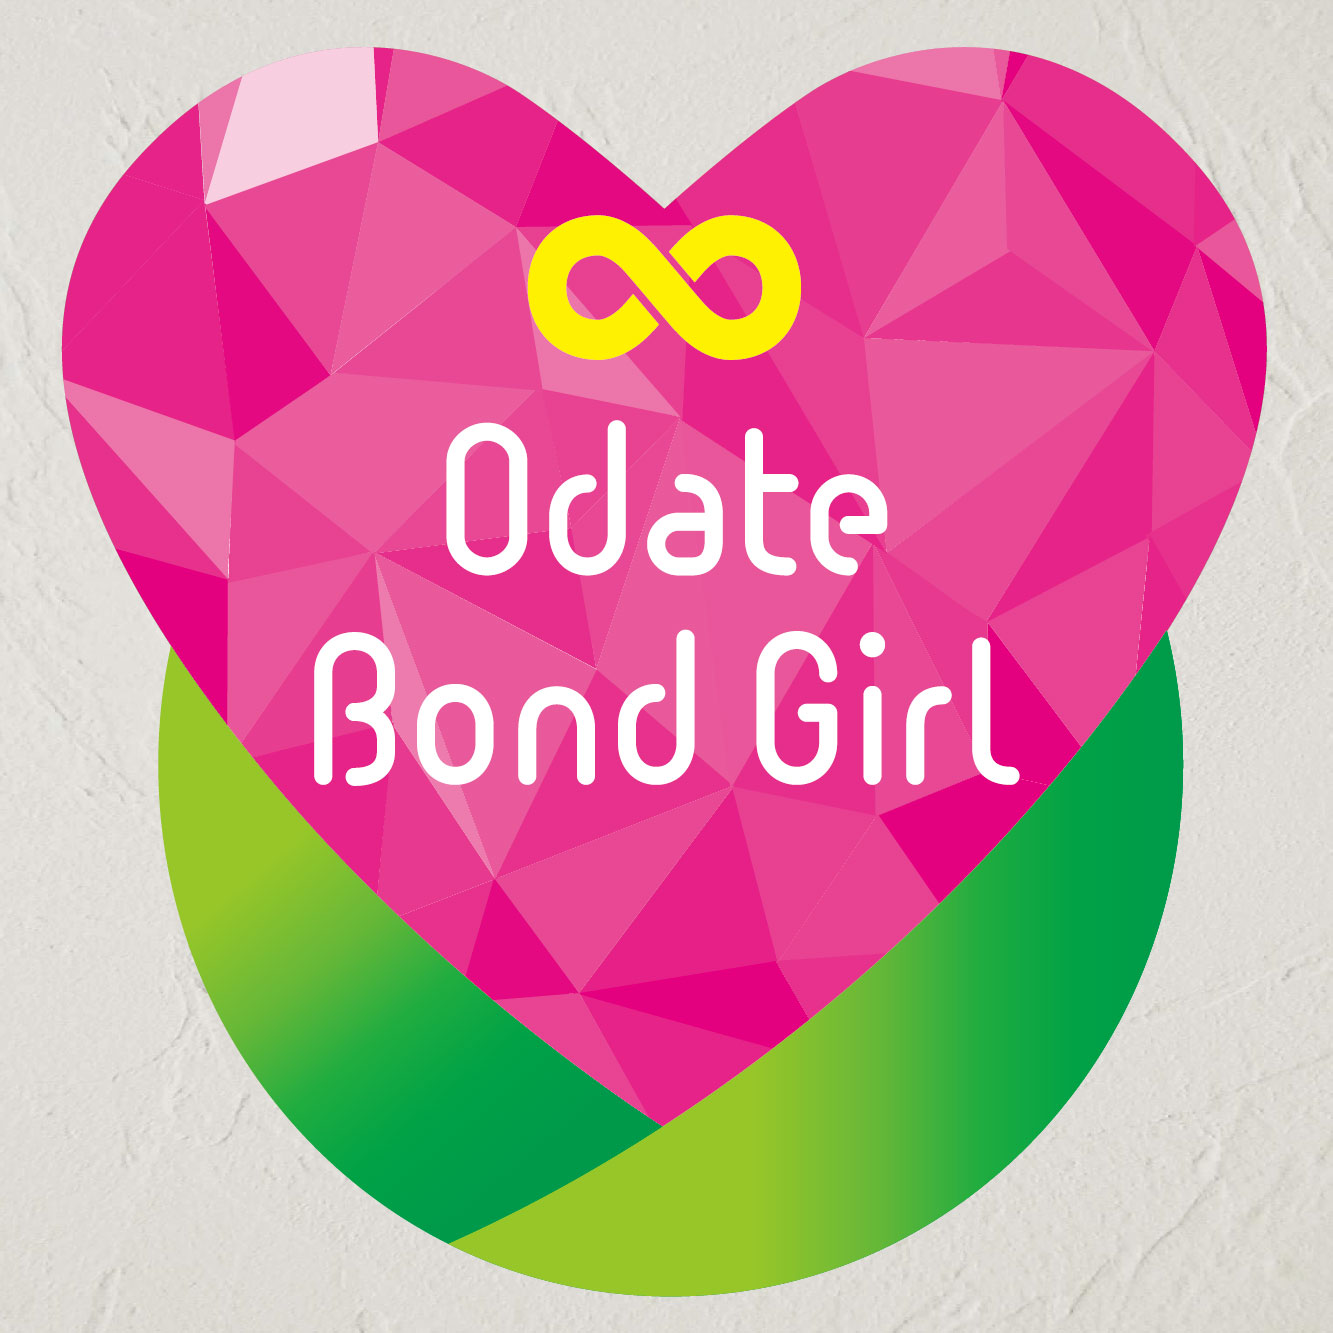 Odate Bond Girl ロゴマーク